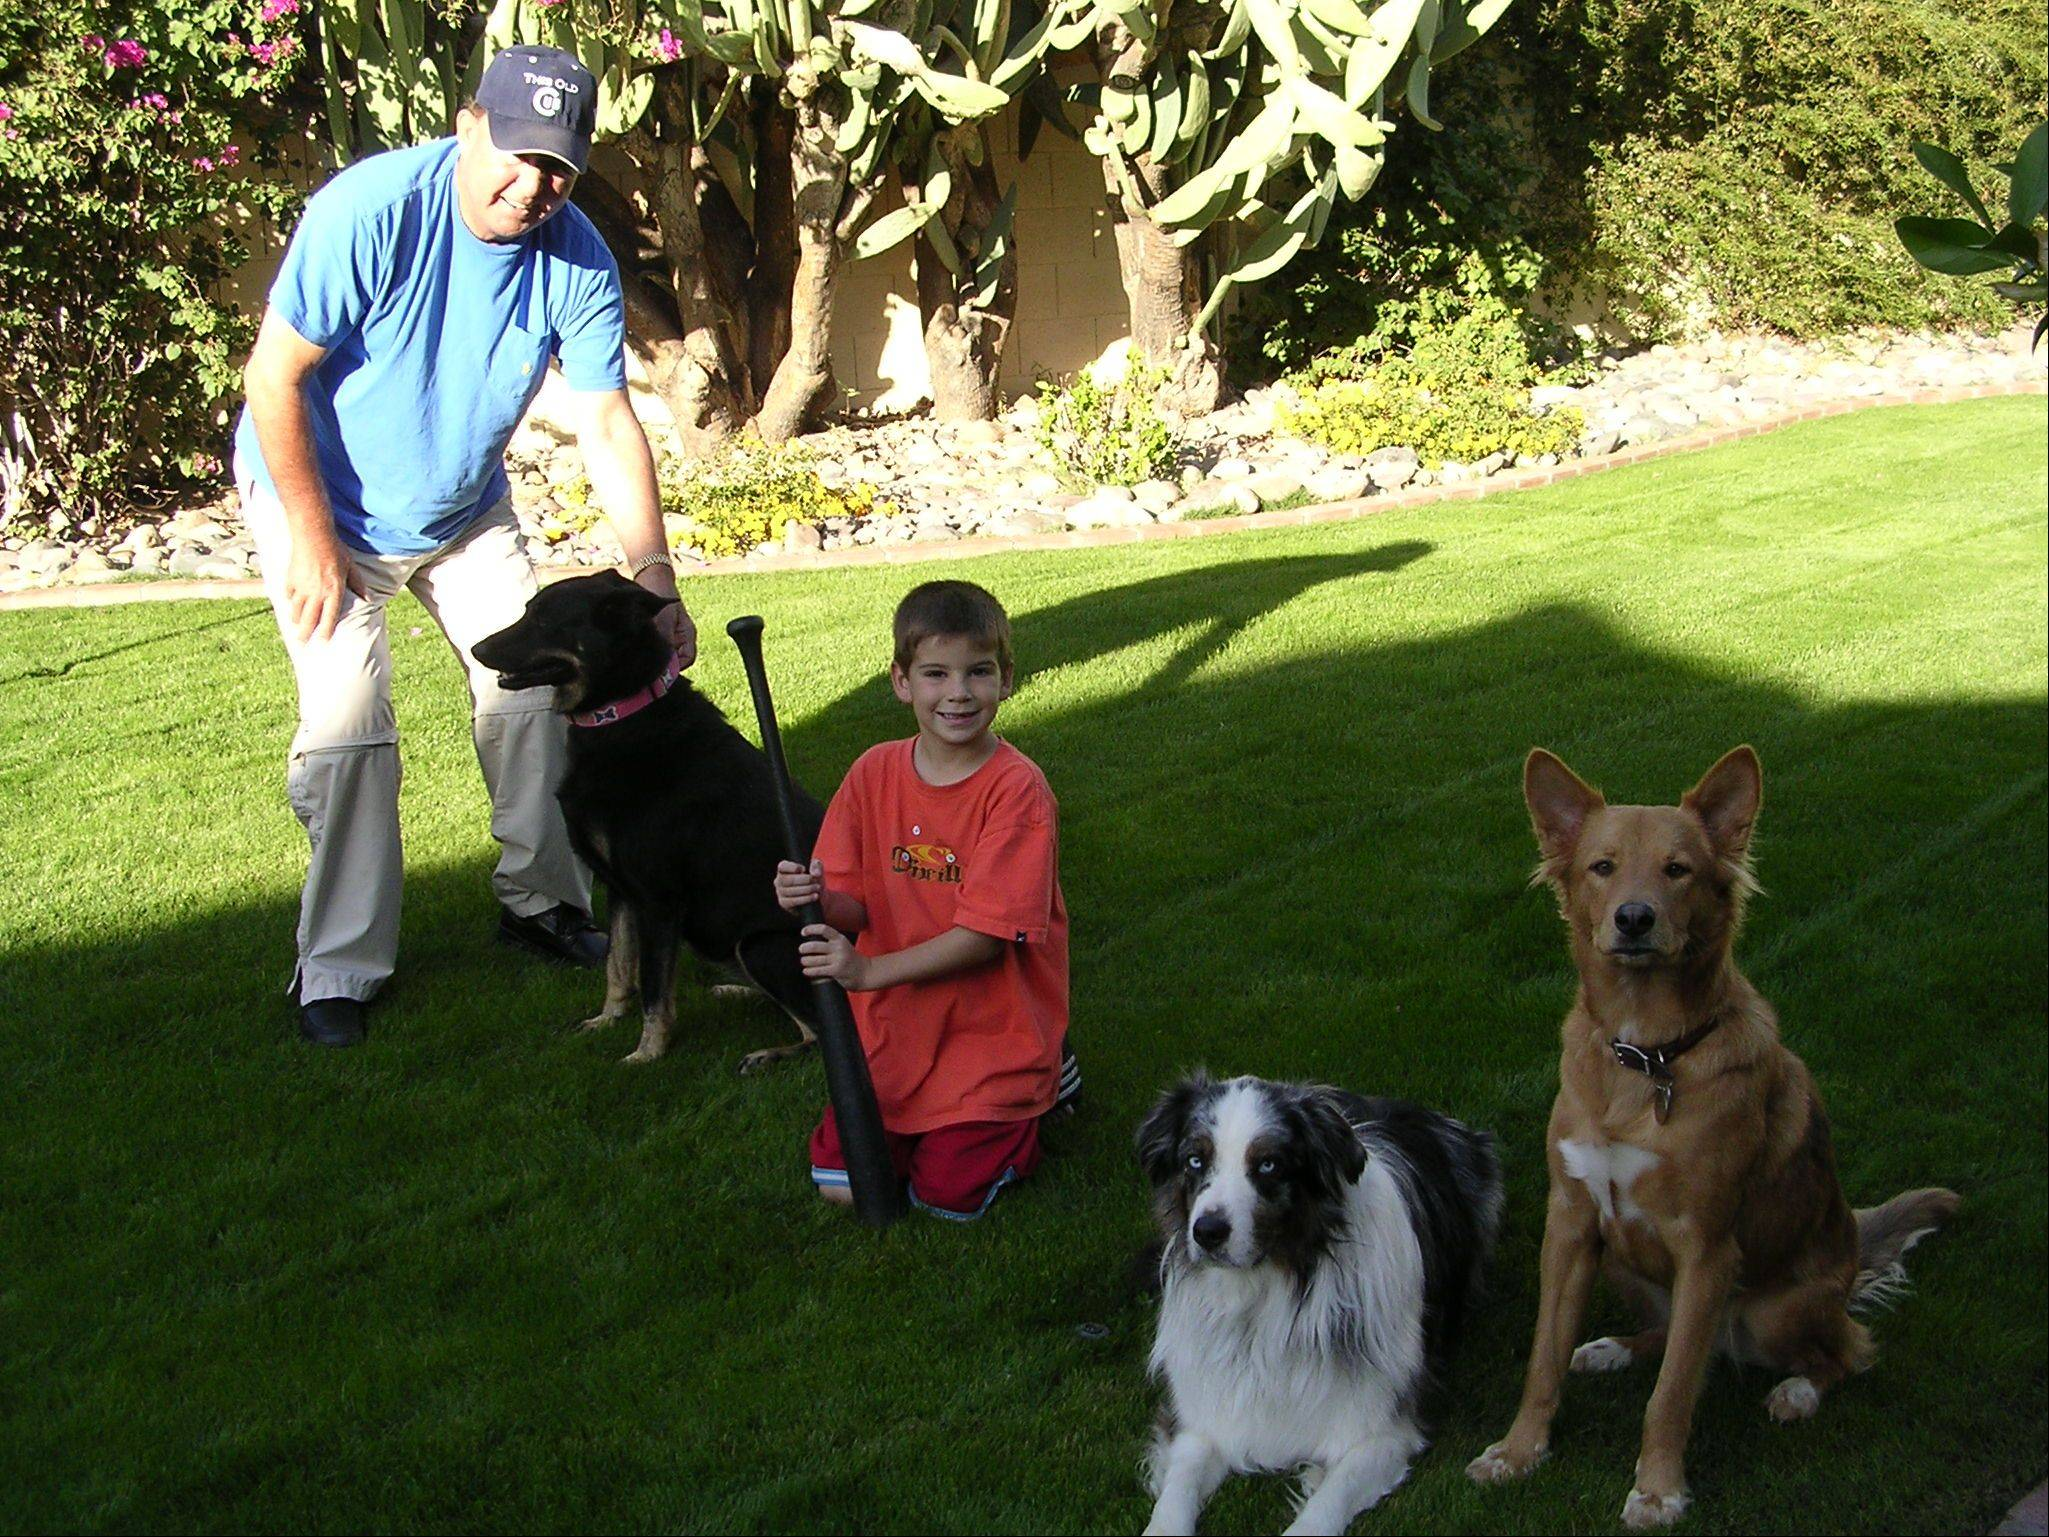 Dogs and children played big roles in Ron Santo's life. Here he is with his grandson Sam and three dogs, from left: Hanna, Joker and Summer.